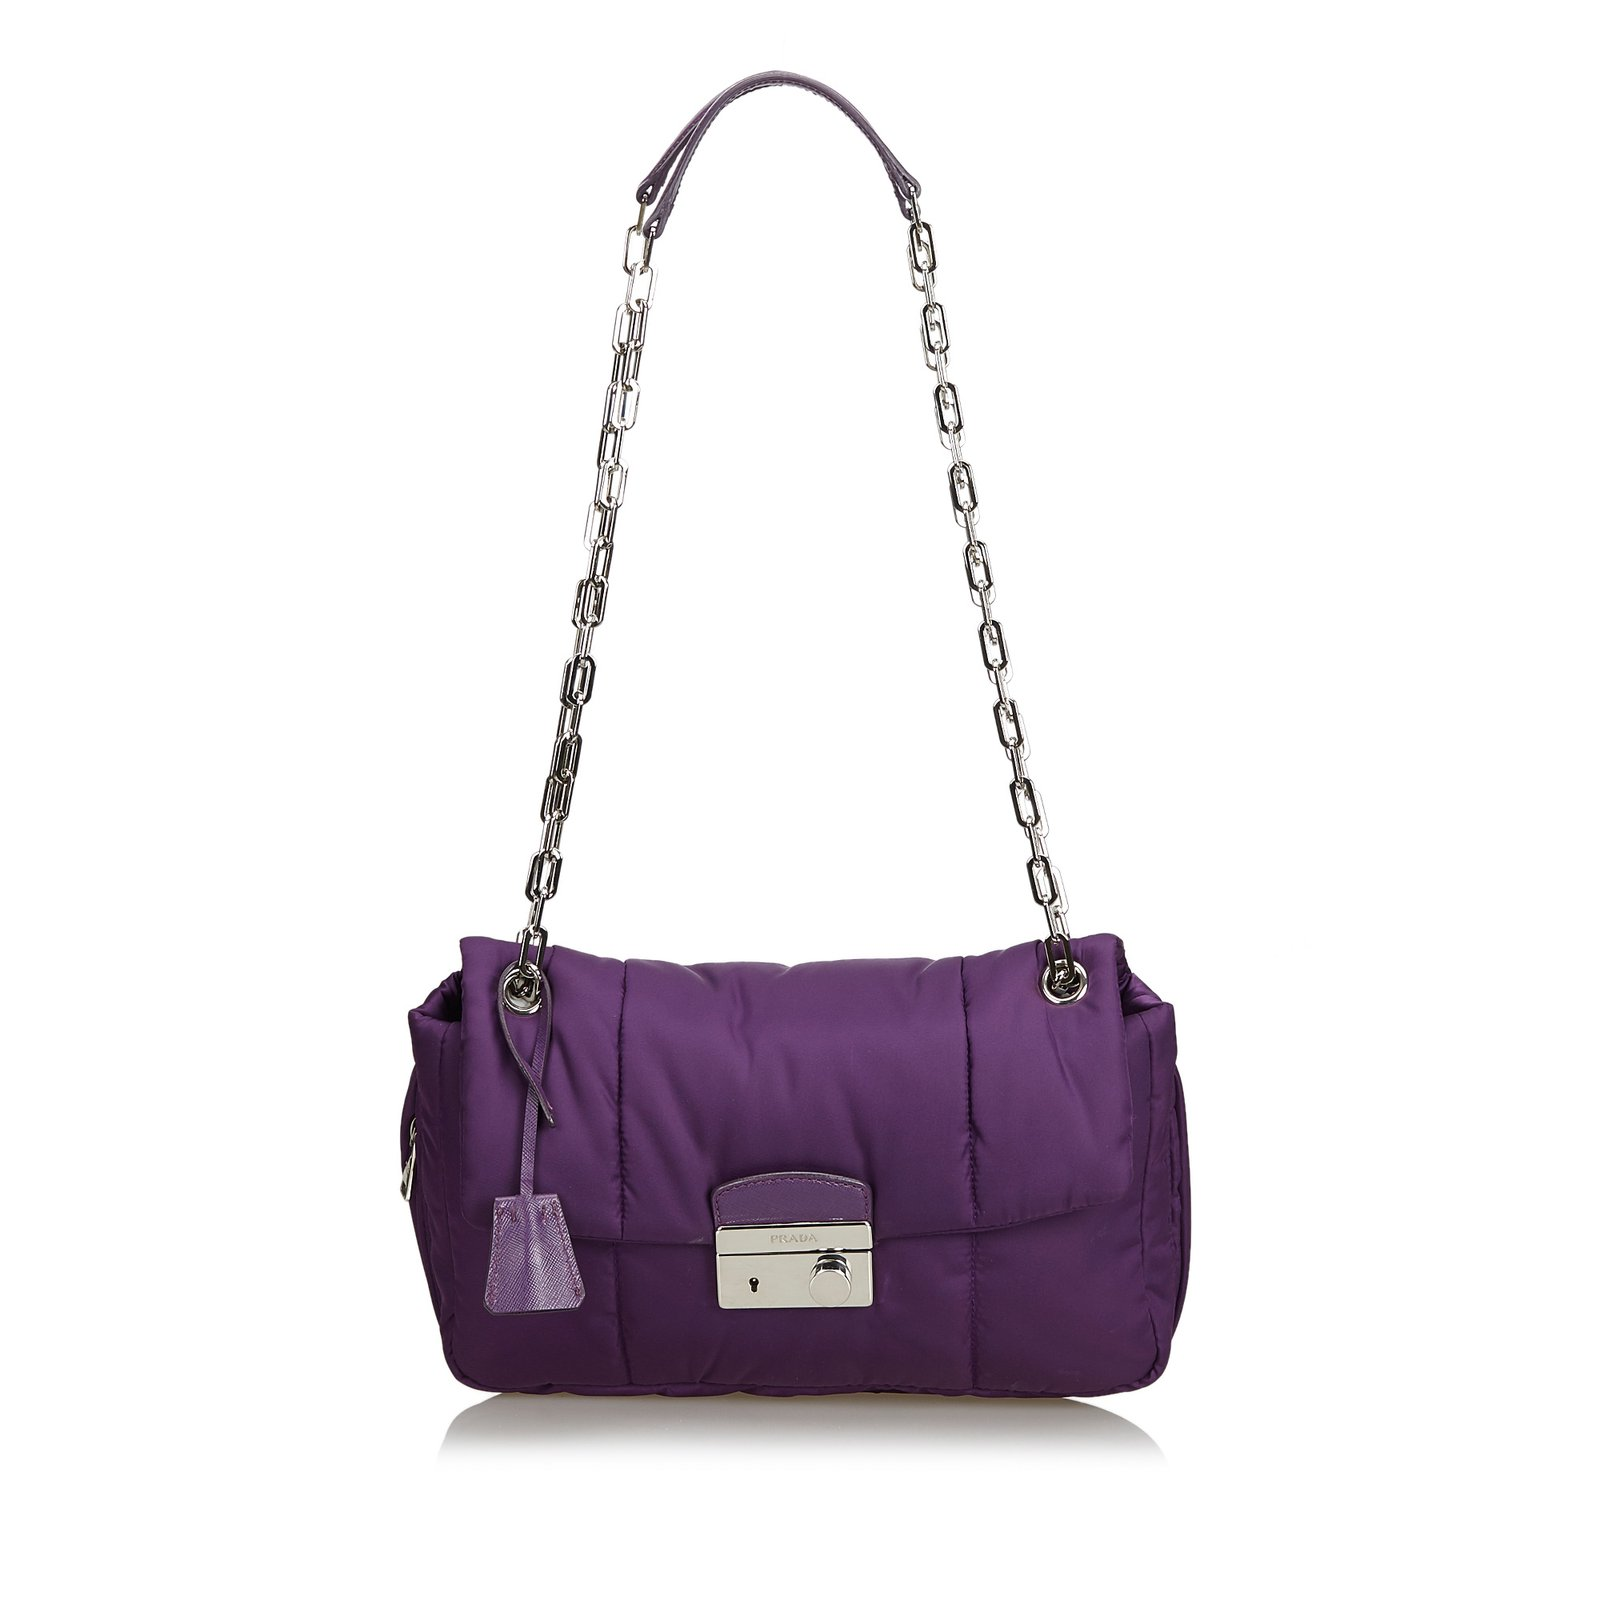 d52f21a47fcf67 ... canada prada nylon bomber shoulder bag handbags leatherothernyloncloth  purple ref. 27d5a cdac2